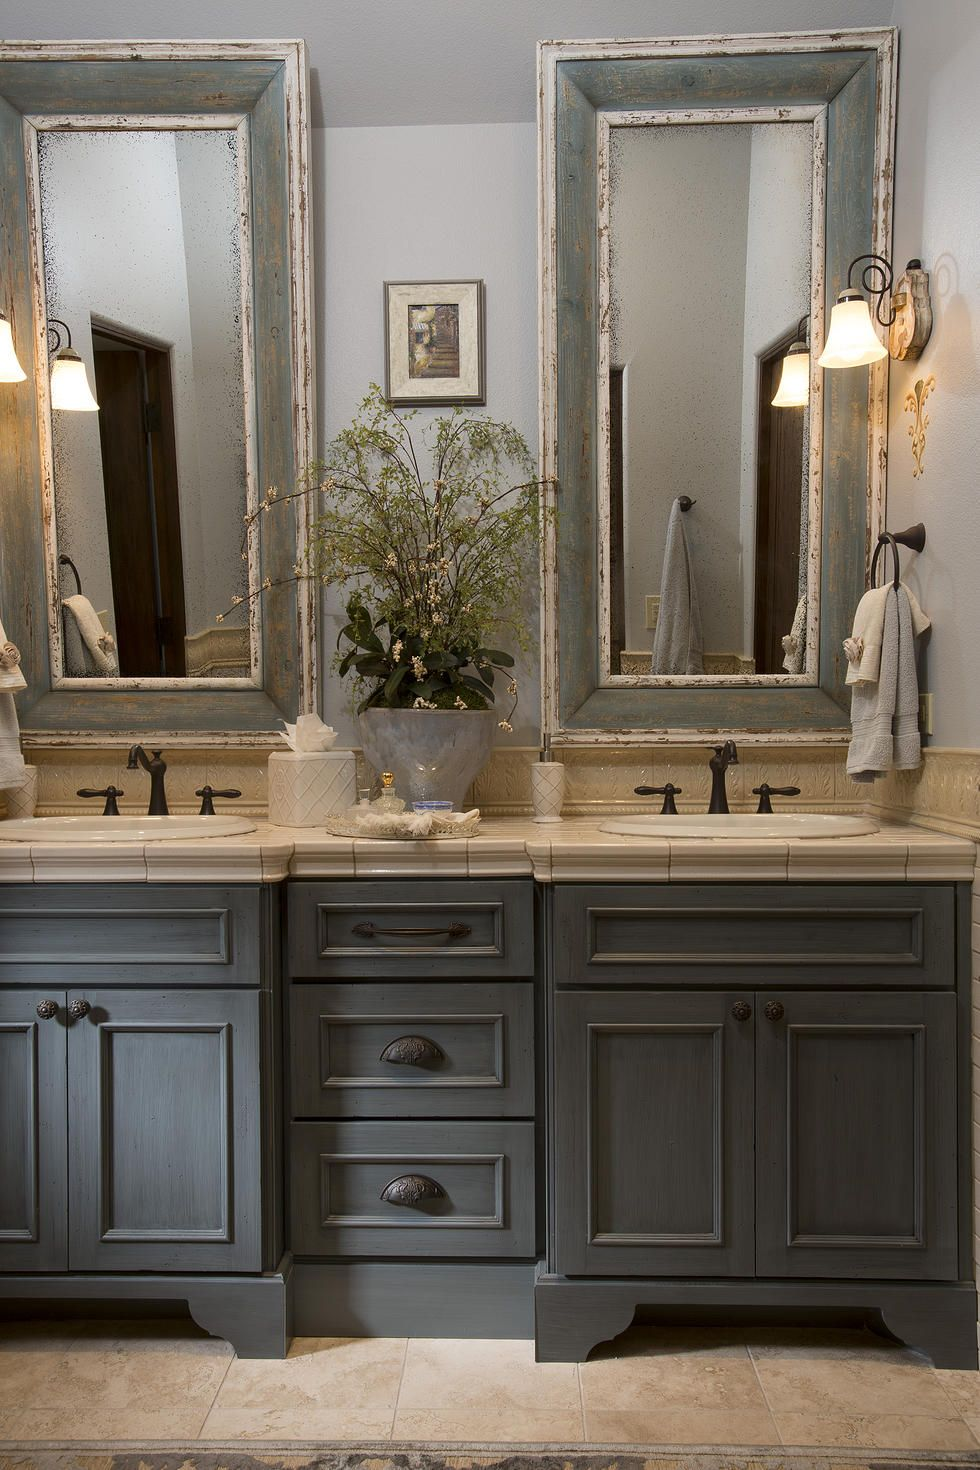 Charmant French Country Bathroom, Gray Washed Cabinets, Mirrors With Painted Frames,  Chippy Paint.